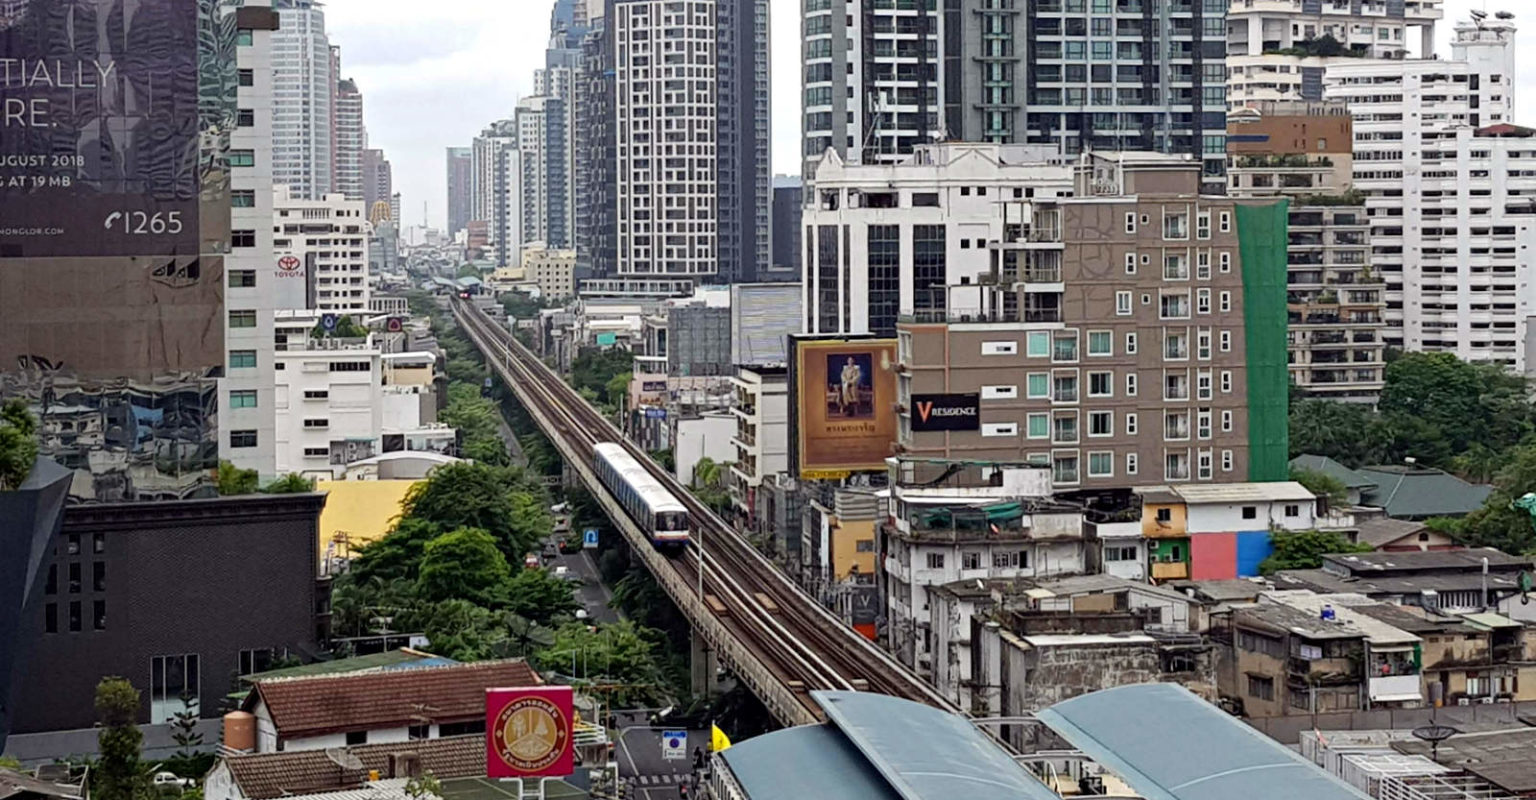 BTS Sky Train in Siam Square between the tall buildings of Bangkok